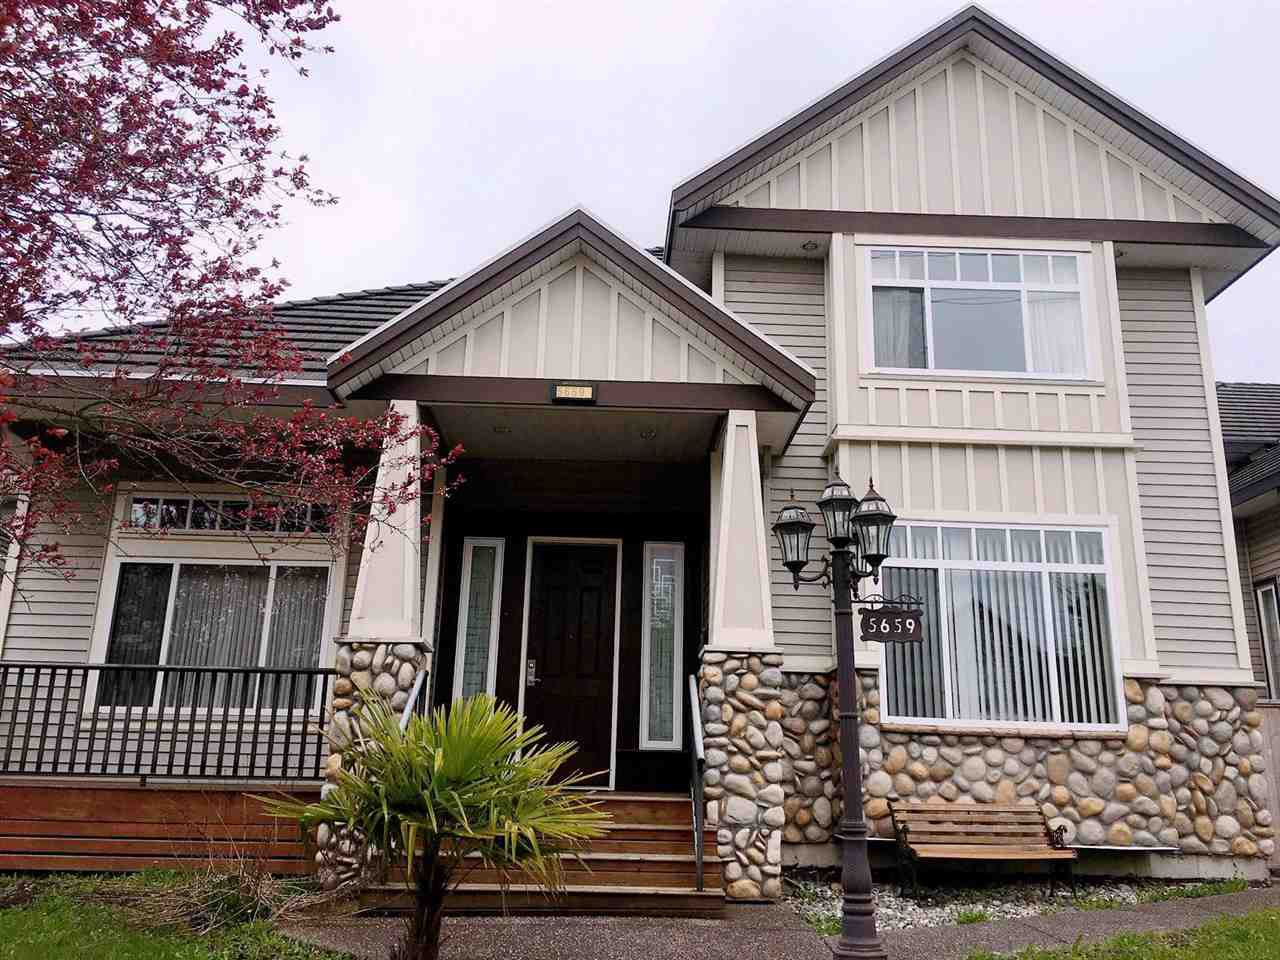 Main Photo: 5659 148 Street in Surrey: Sullivan Station House for sale : MLS®# R2341913